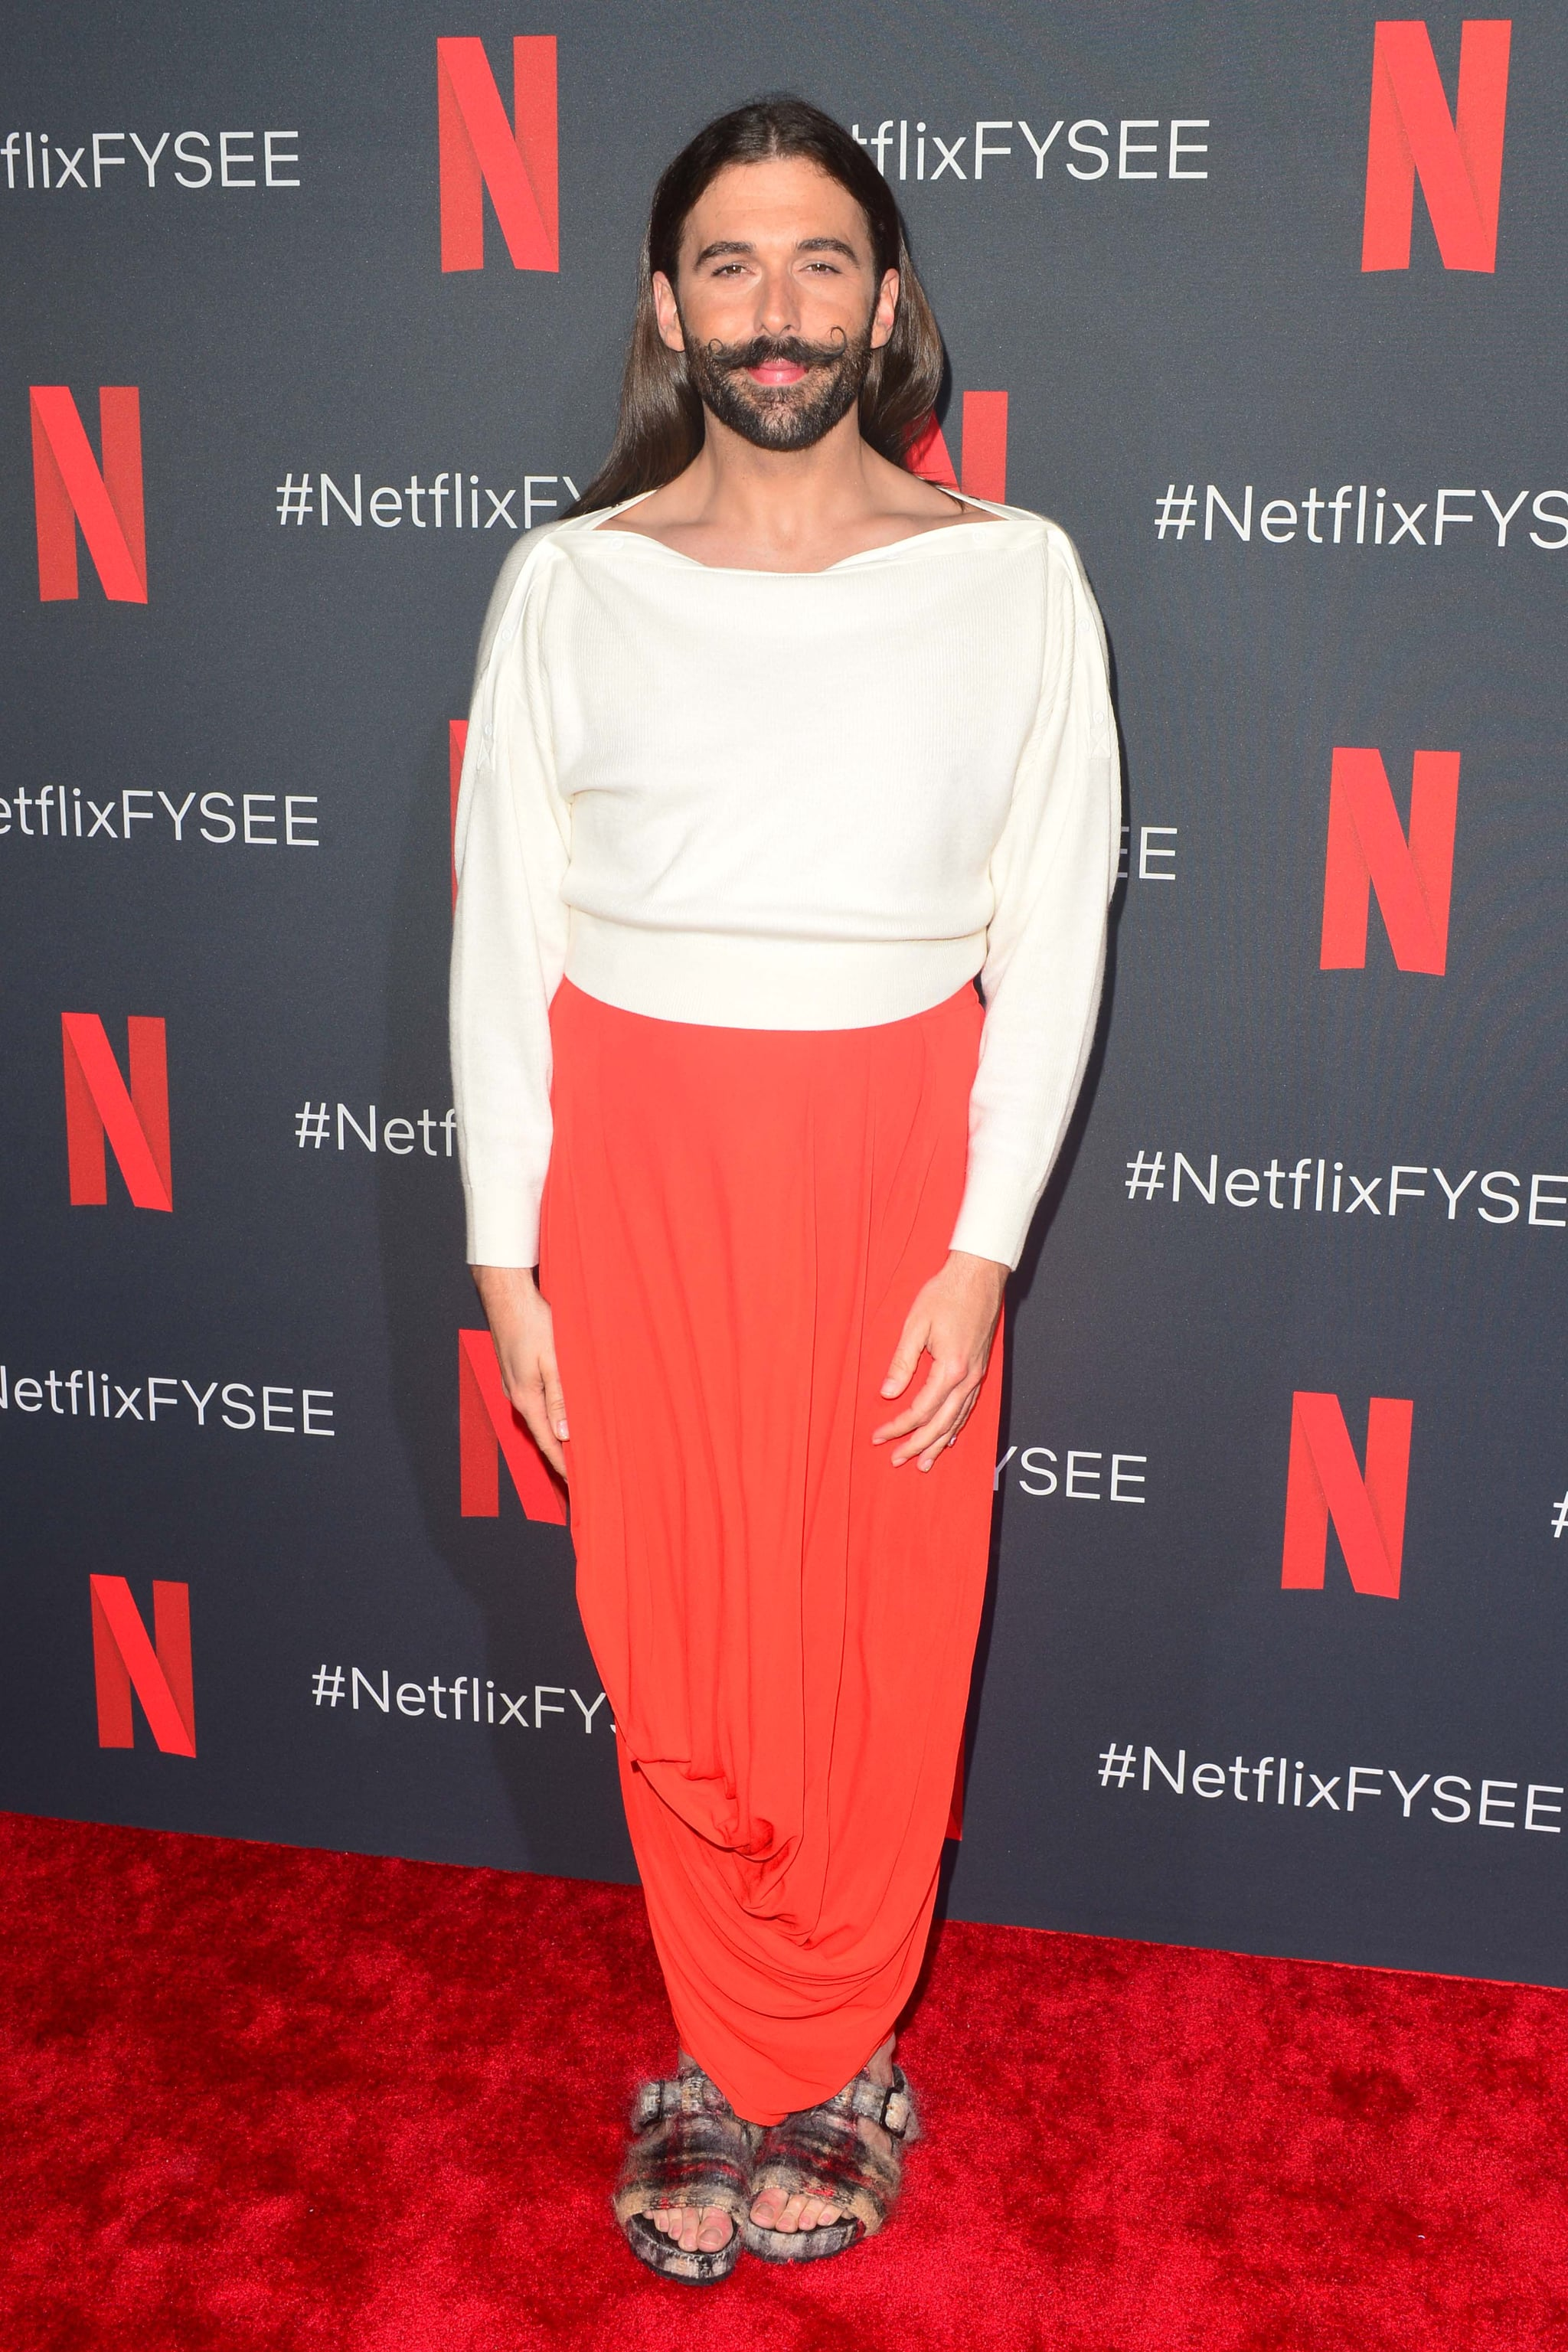 LOS ANGELES, CALIFORNIA - MAY 16: Jonathan Van Ness attends FYC Event of Netflix's 'Queer Eye' at Raleigh Studios on May 16, 2019 in Los Angeles, California. (Photo by Jerod Harris/Getty Images)